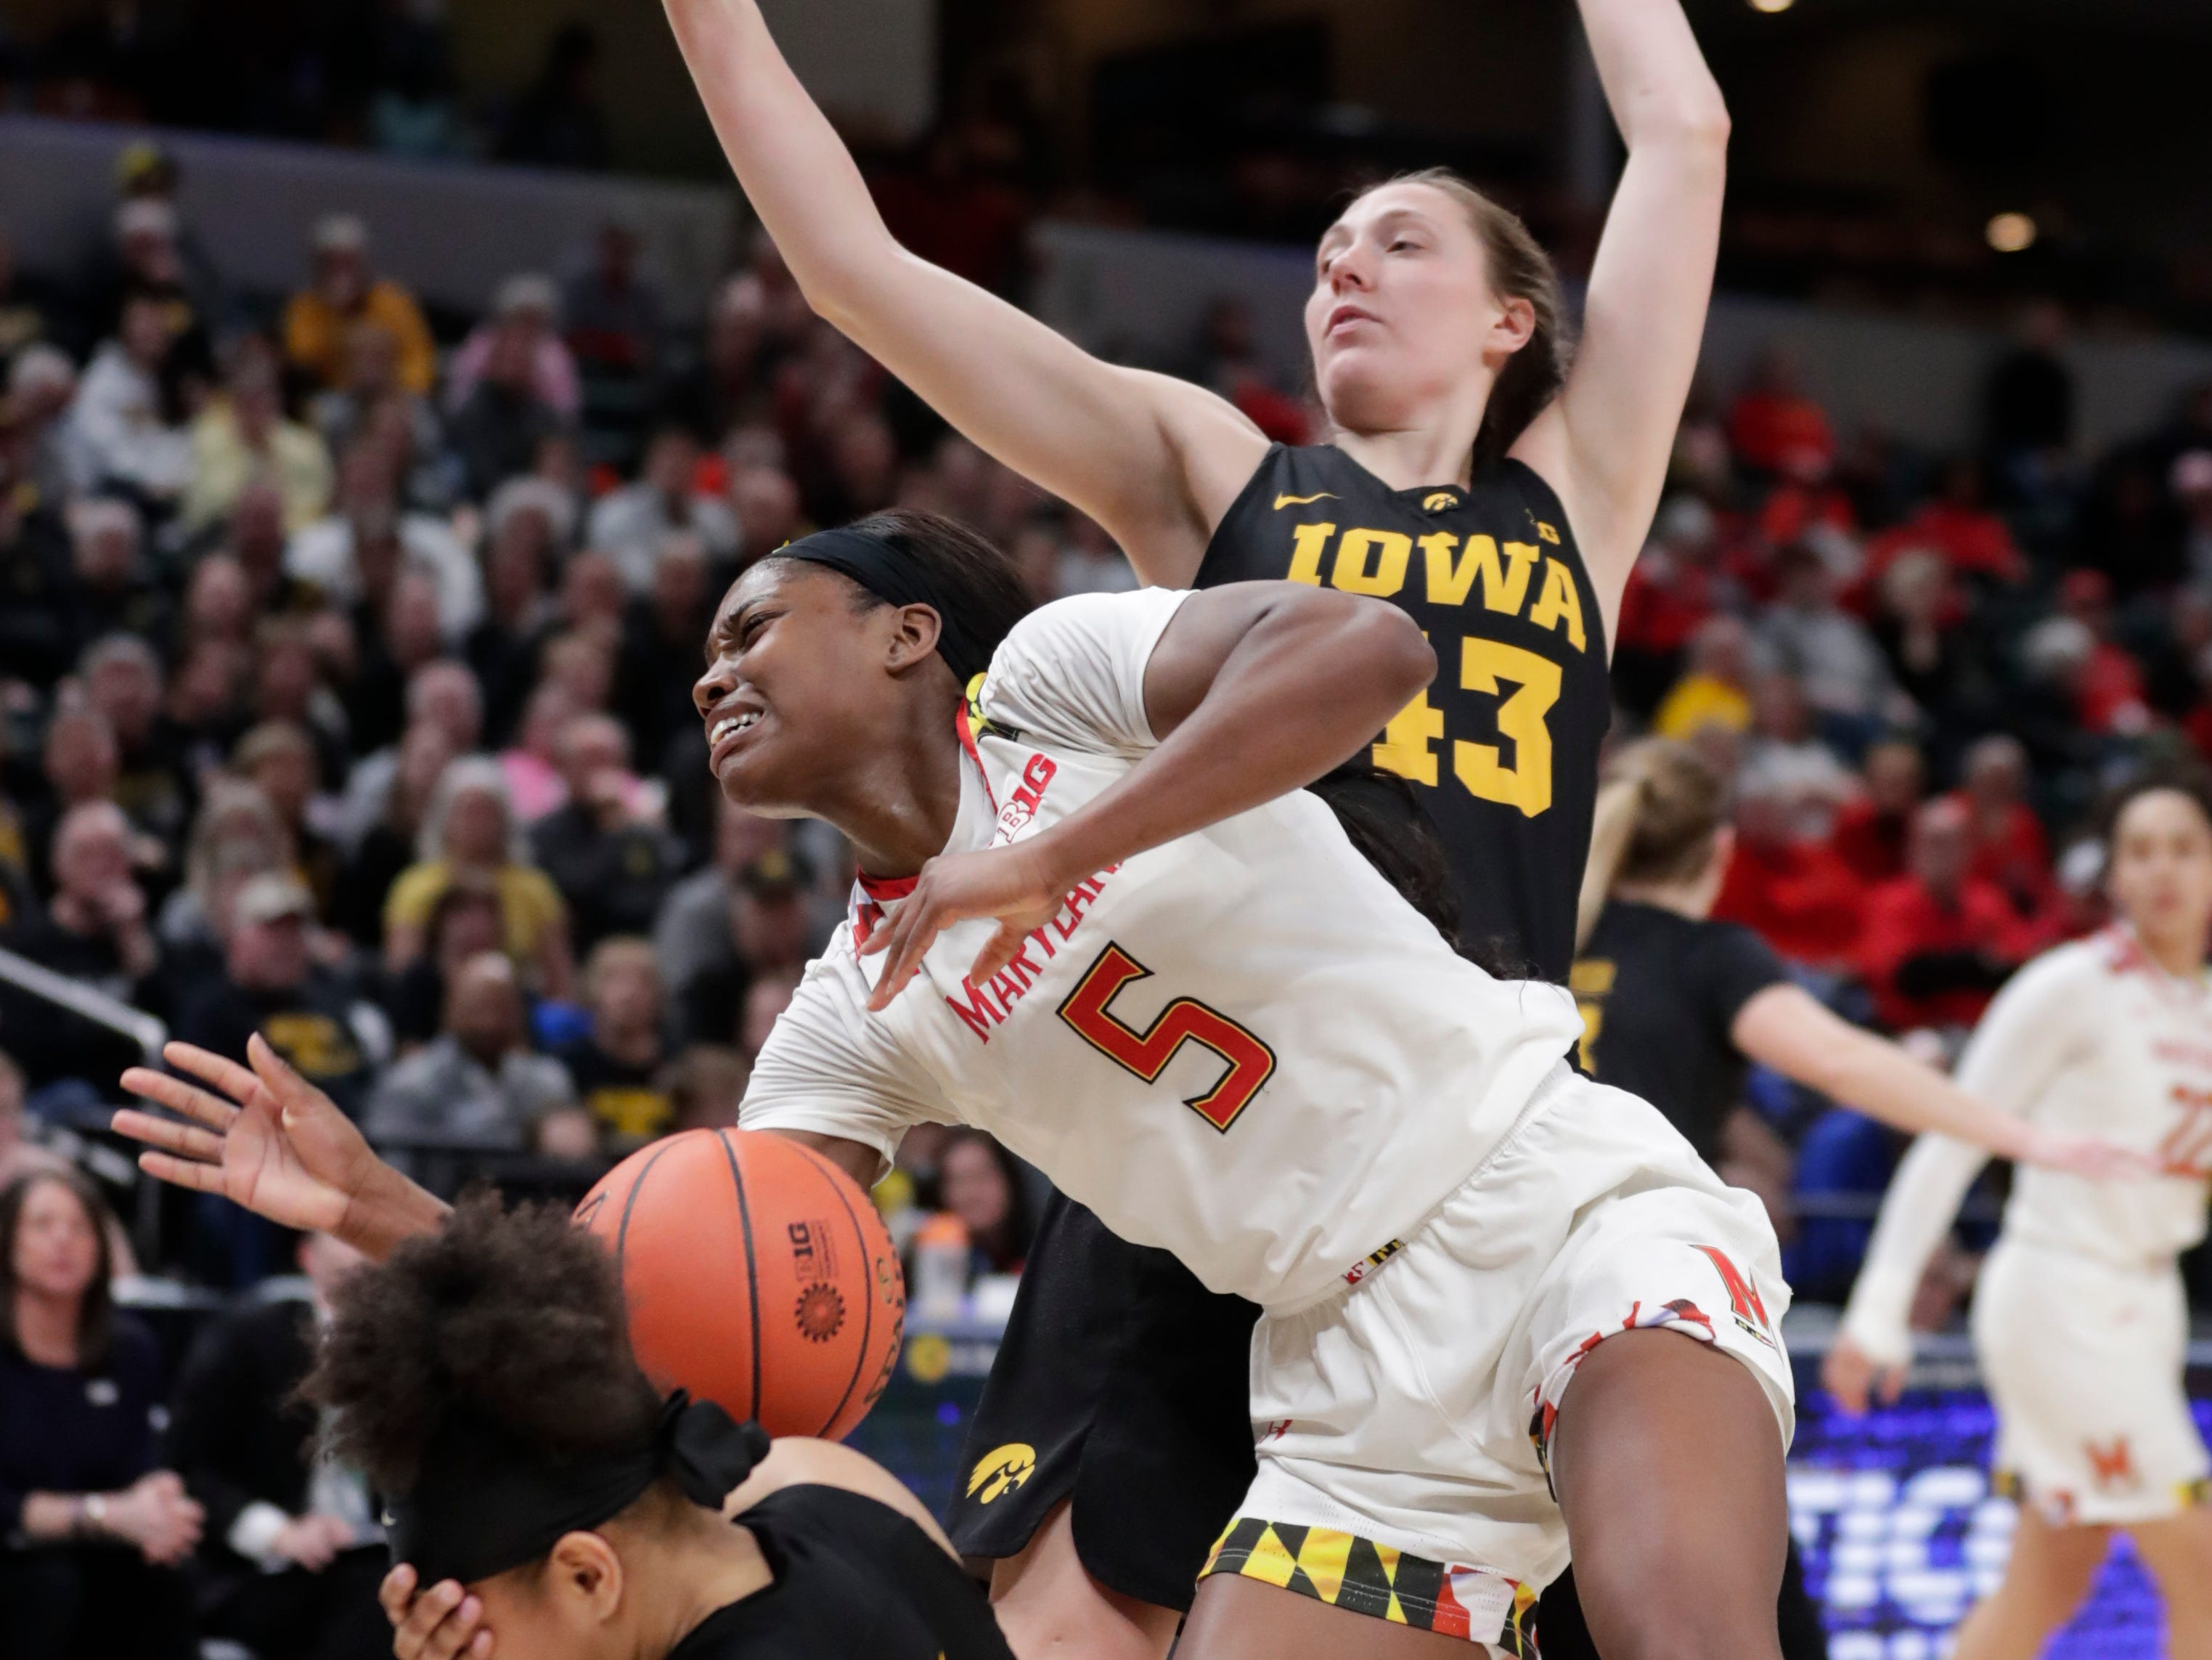 Iowa guard Tania Davis (11) takes hard contact in a battle with Maryland guard Kaila Charles (5) and Iowa's Amanda Ollinger (43) during the Big Ten women's championship game.